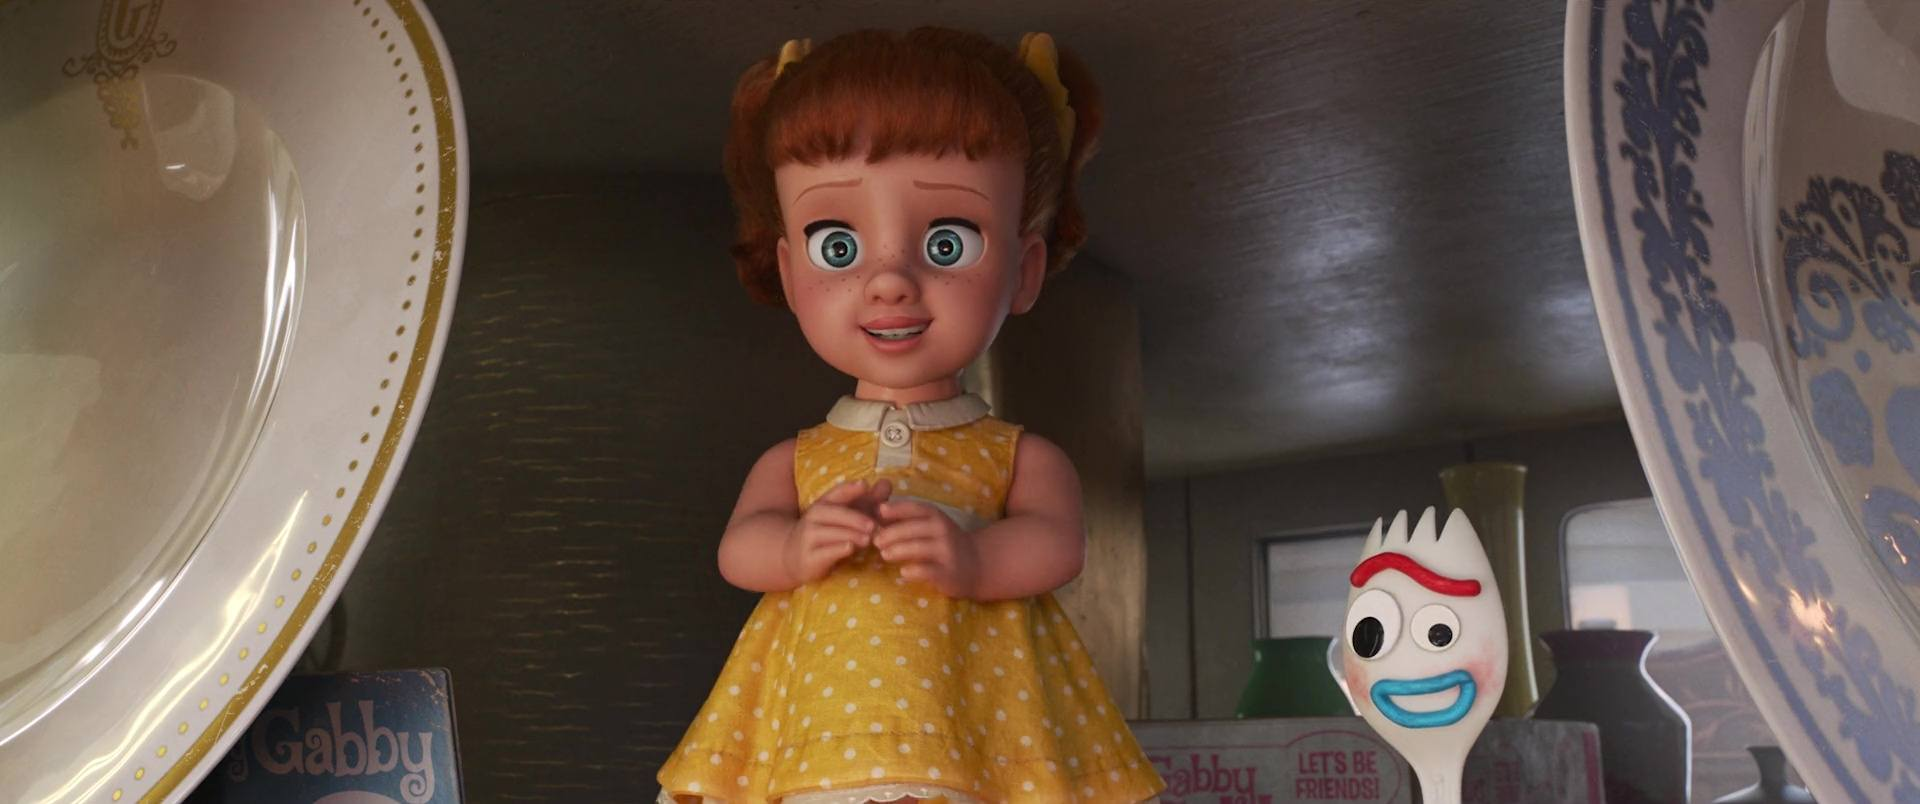 gabby-personnage-toy-story-4-02